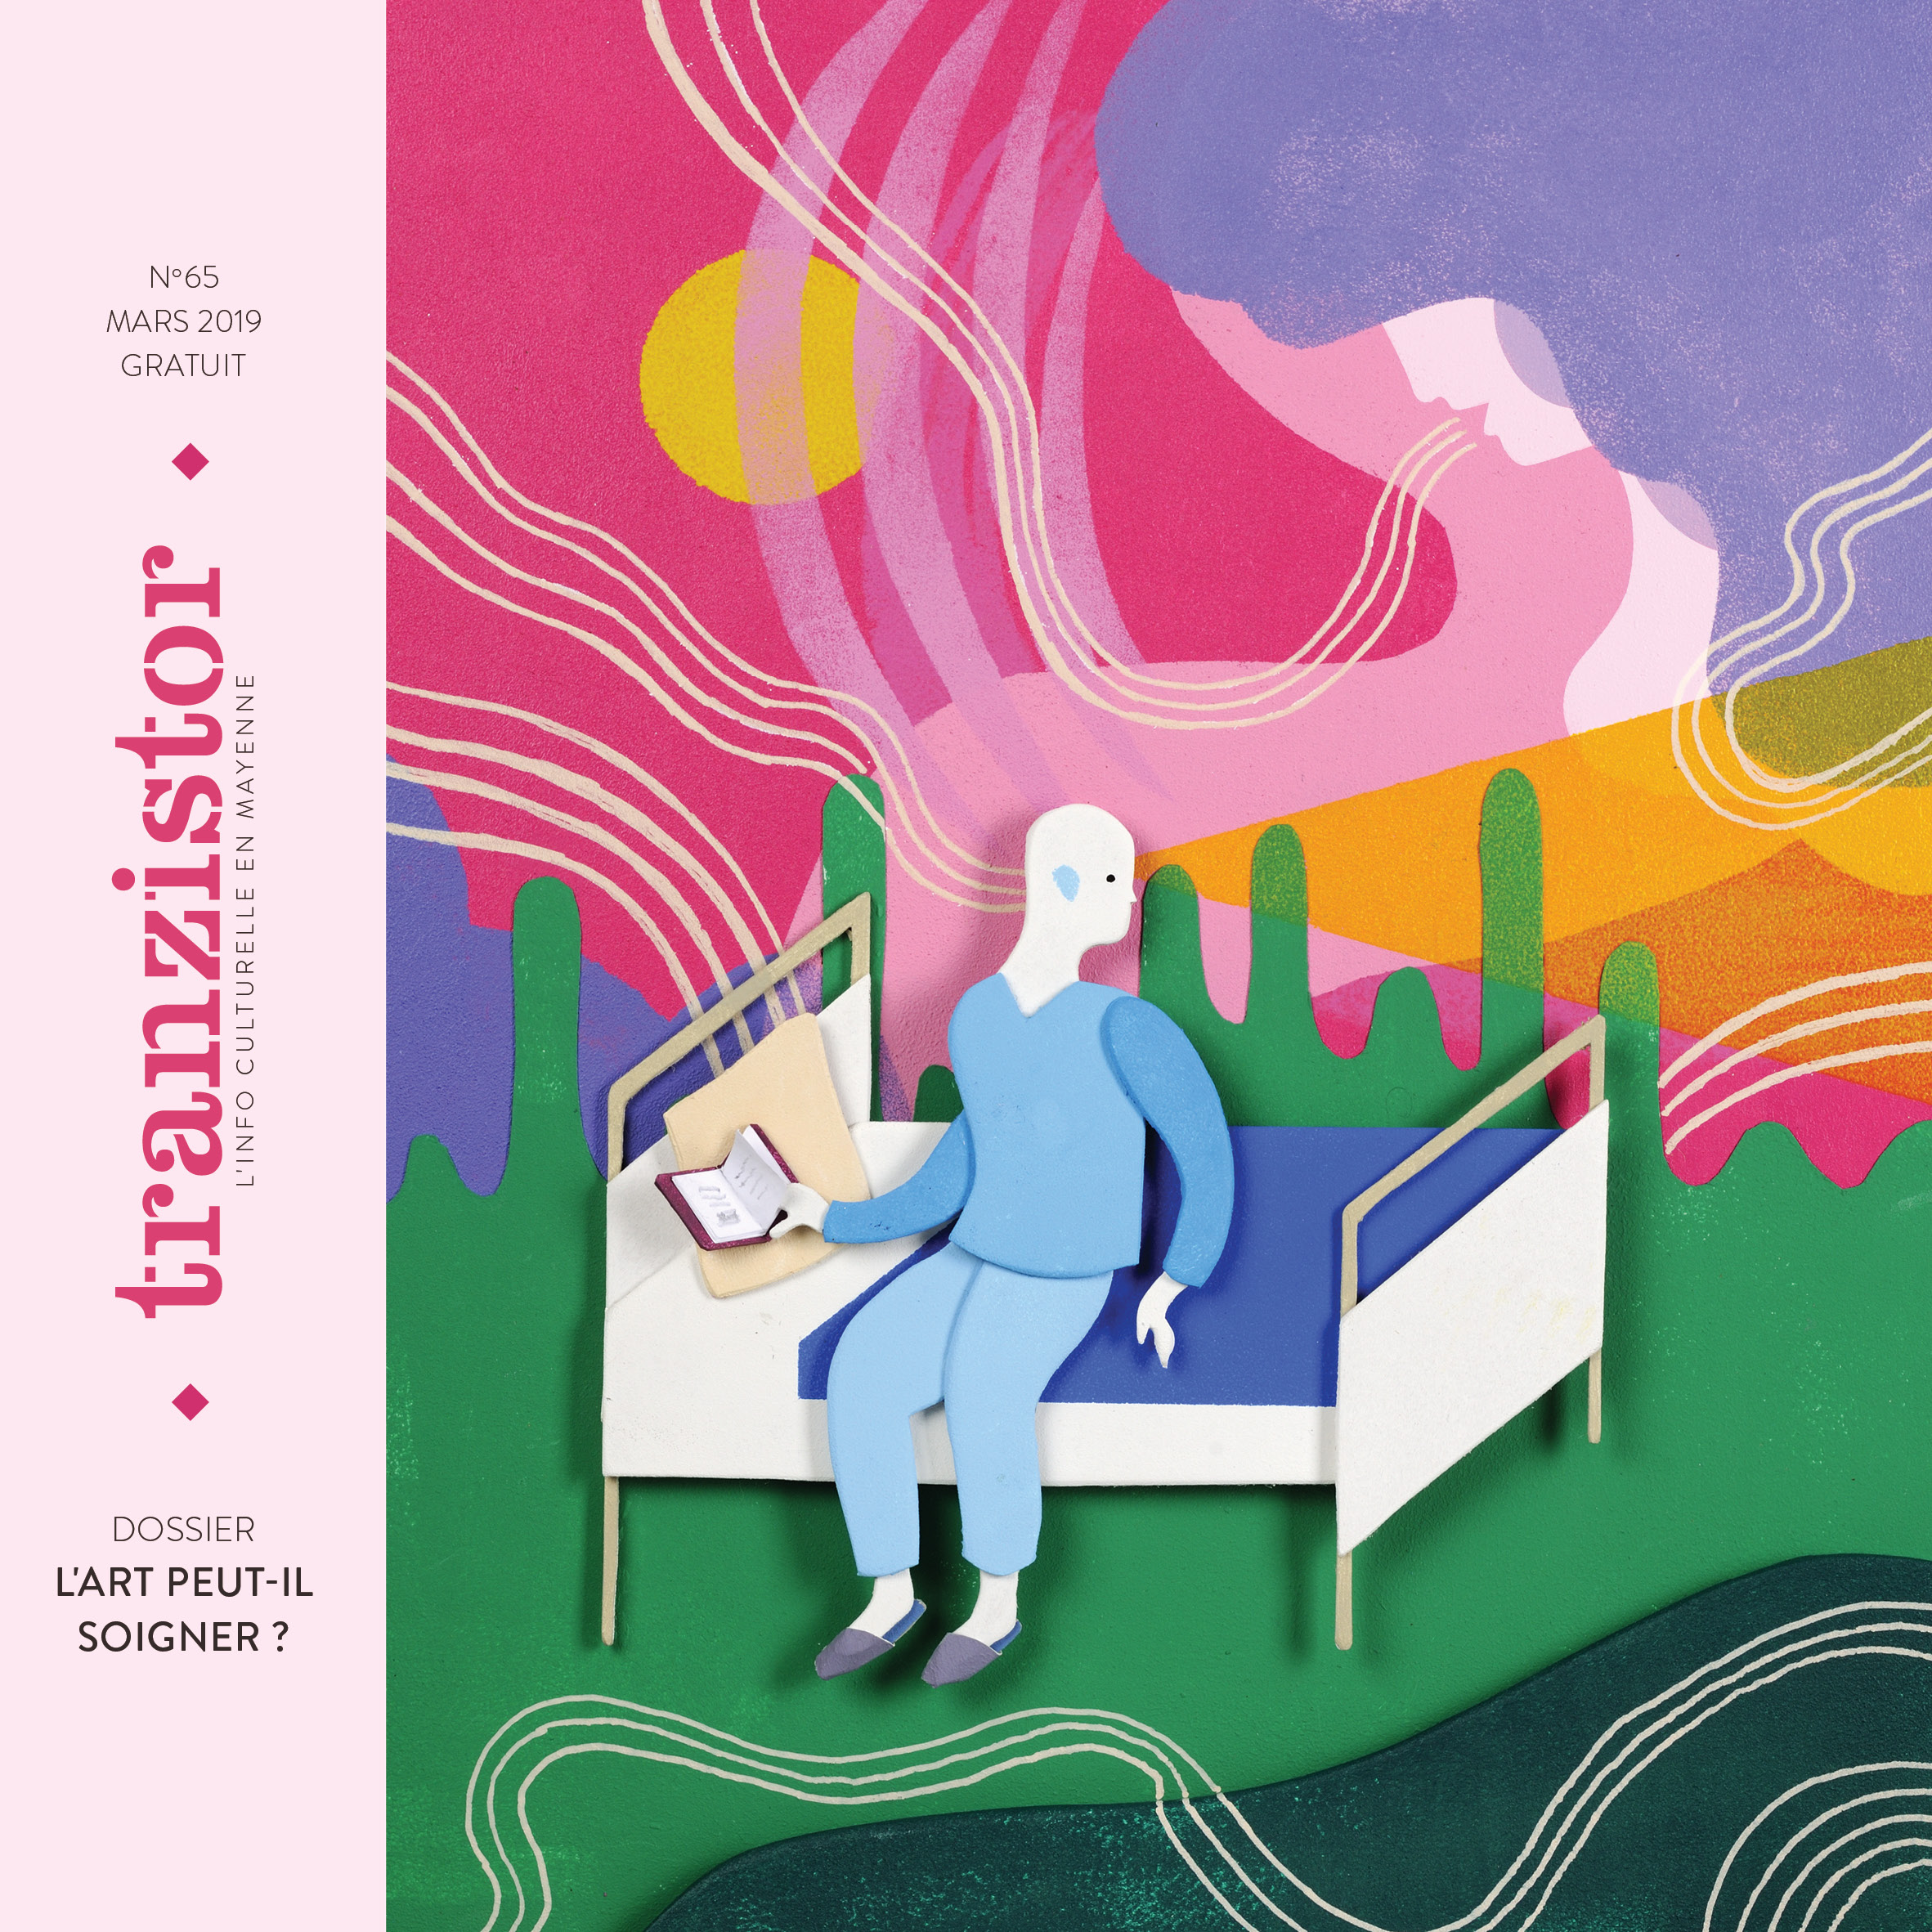 Couverture du N° 64 de Tranzistor, illustrée par Christophe Alline